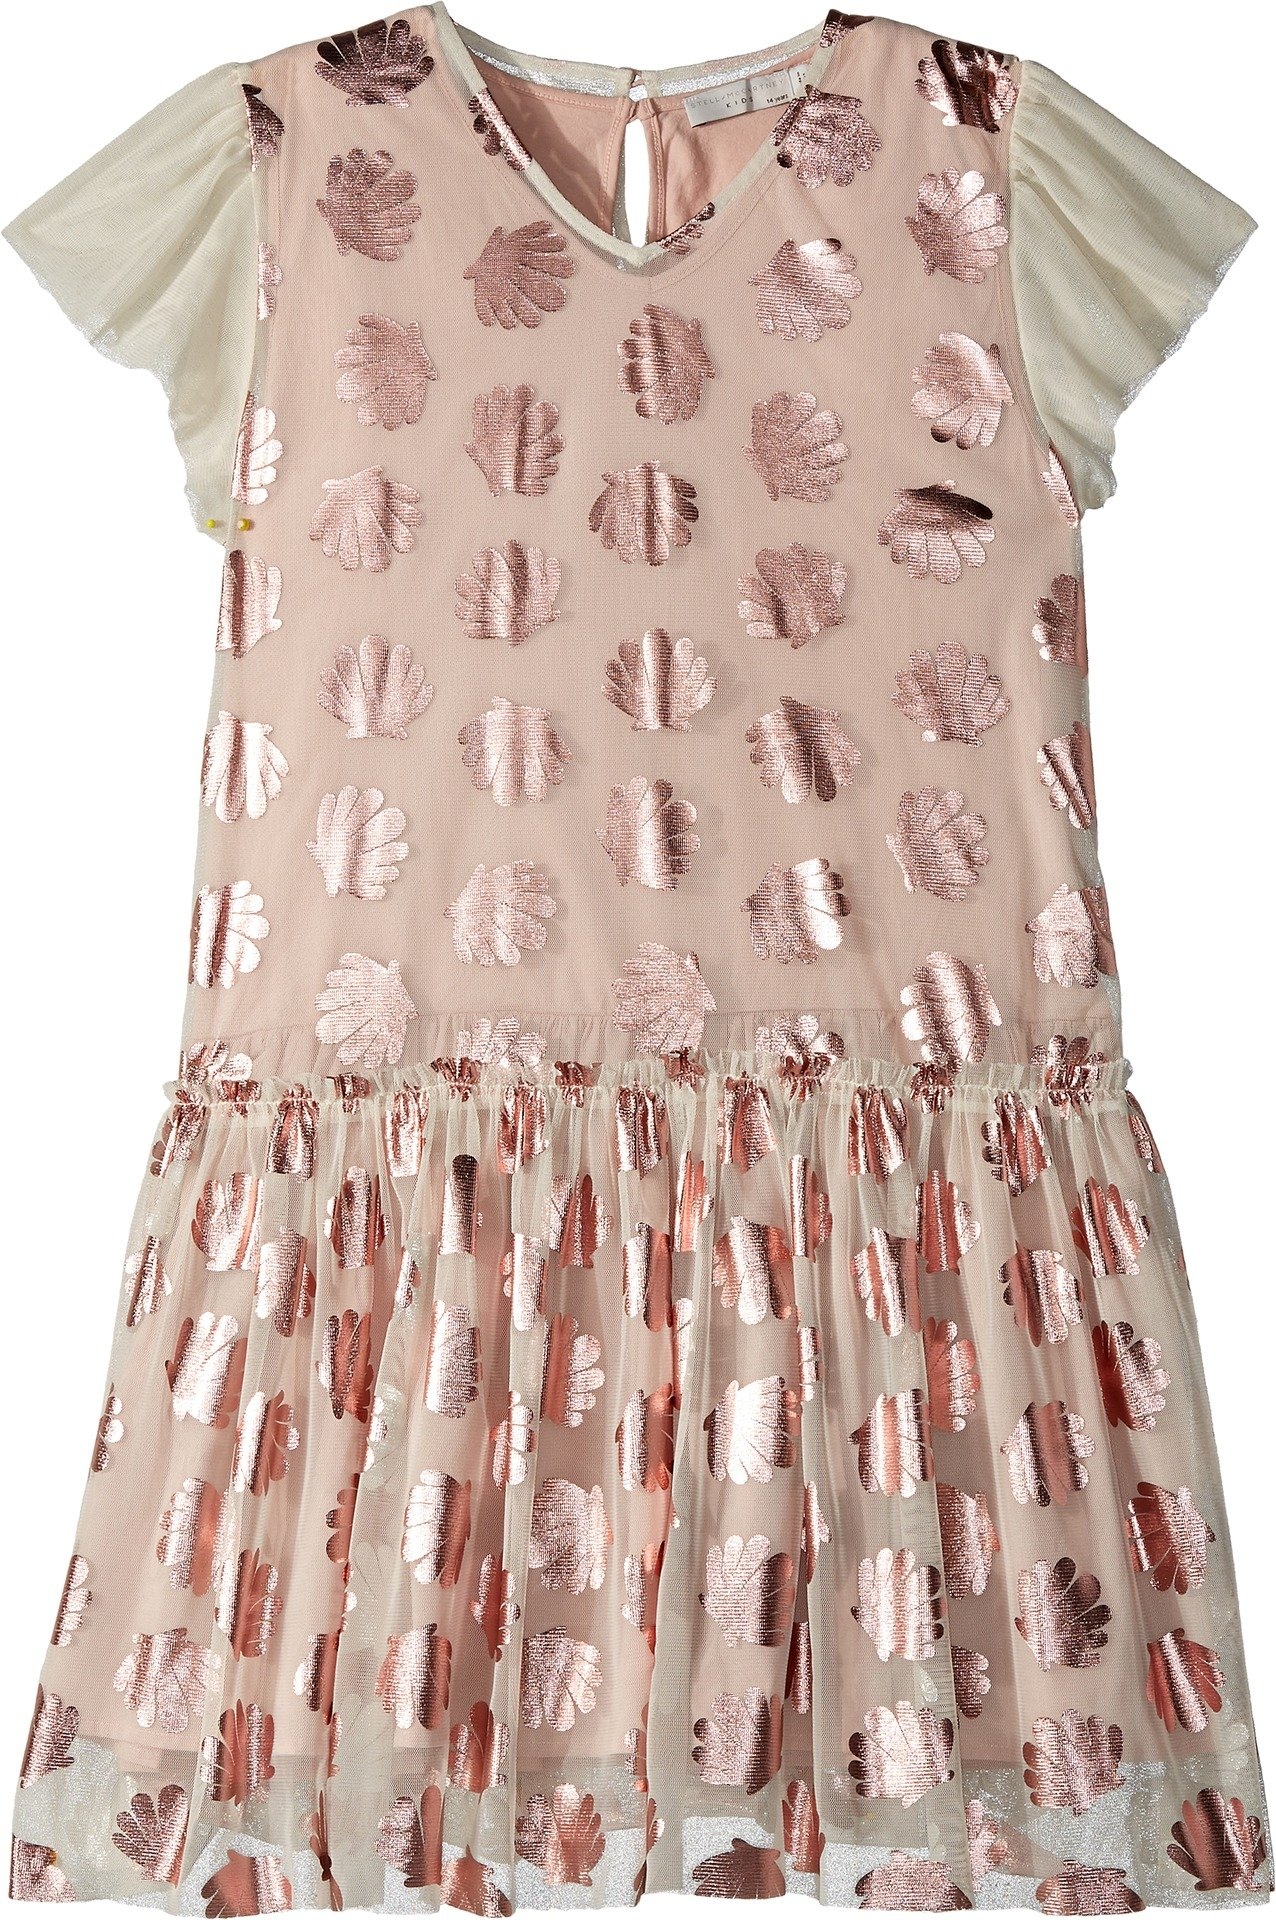 Stella McCartney Kids Baby Girl's Bellie Tulle Dress w/Metallic Seashells (Toddler/Little Kids/Big Kids) Pink 8